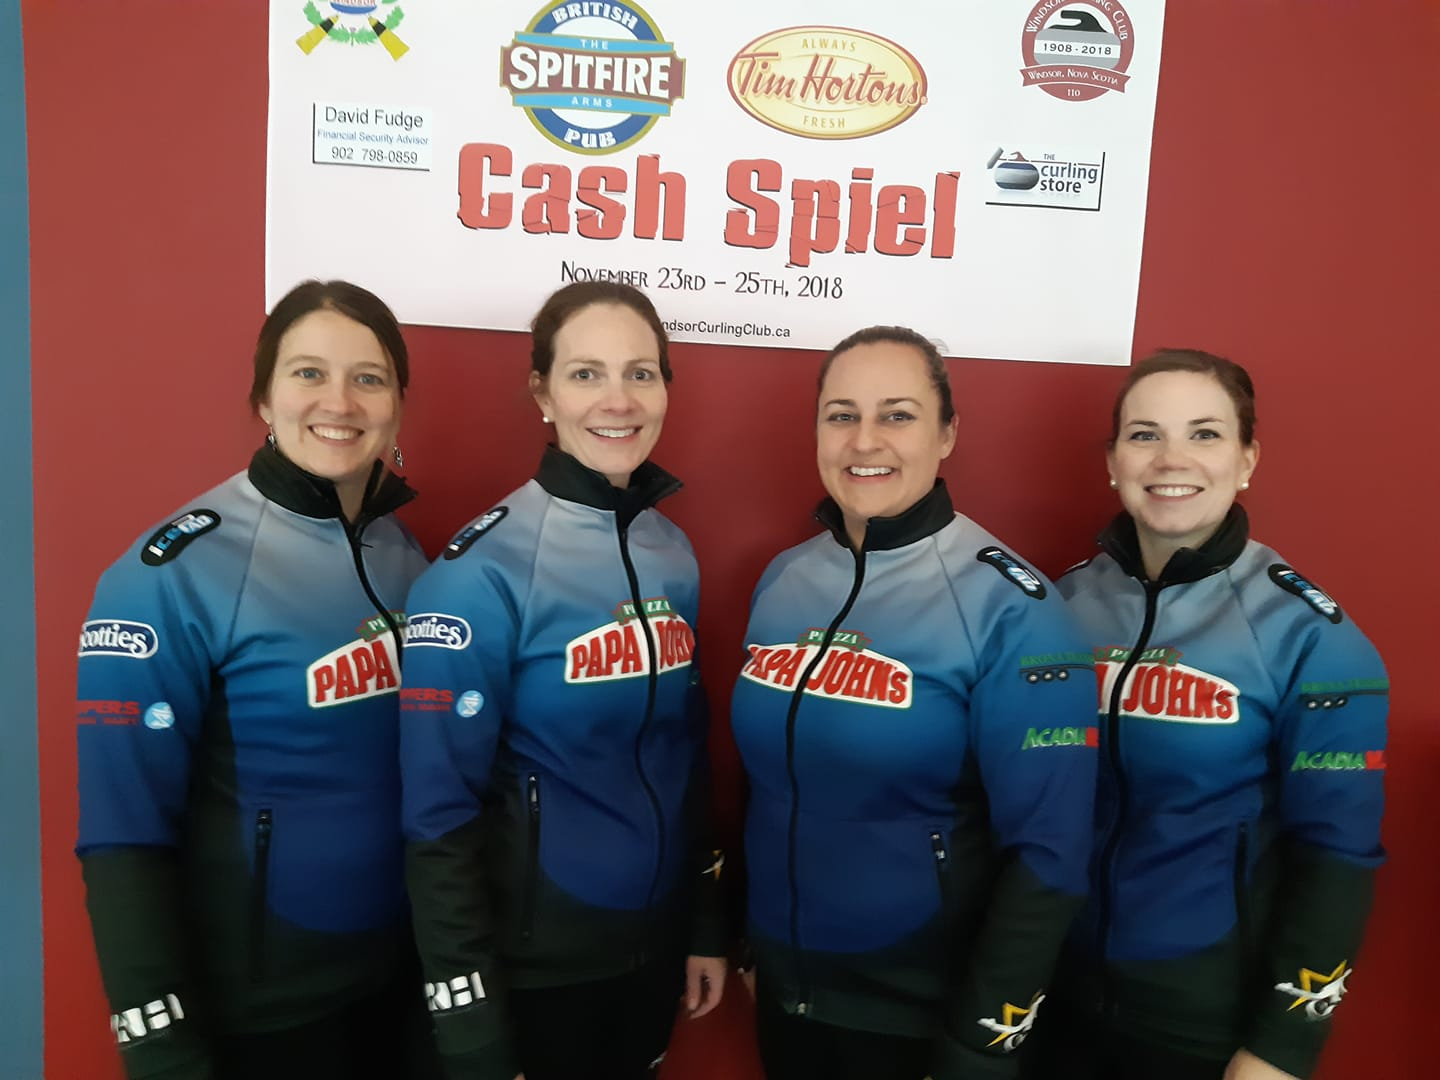 4080e1bb4 ... to clinch a 9-2 win against PEI's Suzanne Birt foursome in this  afternoon's final of the 15 team, $13,000 purse Tim Hortons Spitfire Arms  Cash Spiel at ...